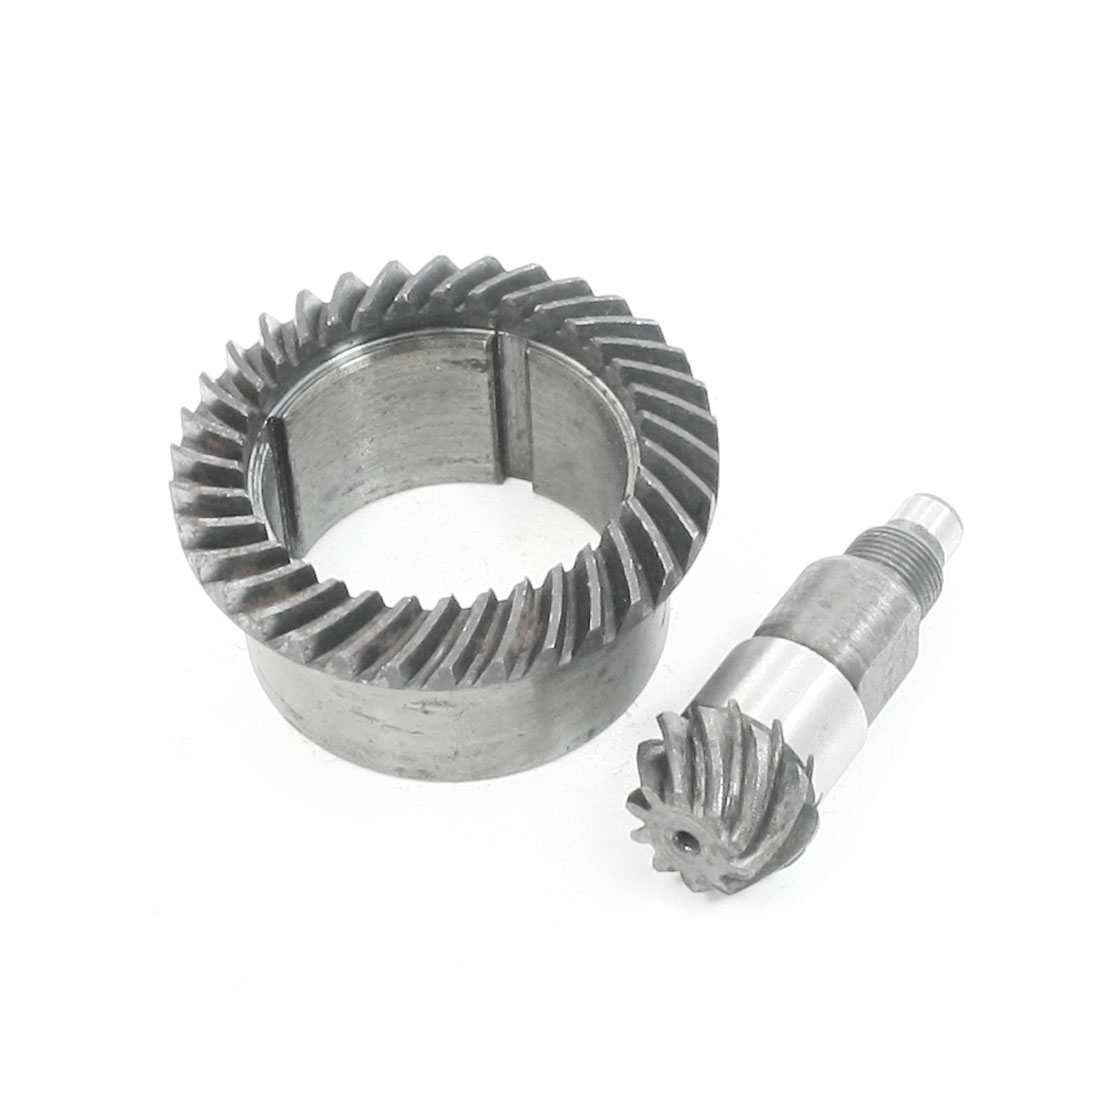 Replacement Part Spiral Bevel Gear Pinion Set for Hit-Min 26 Rotary Hammer